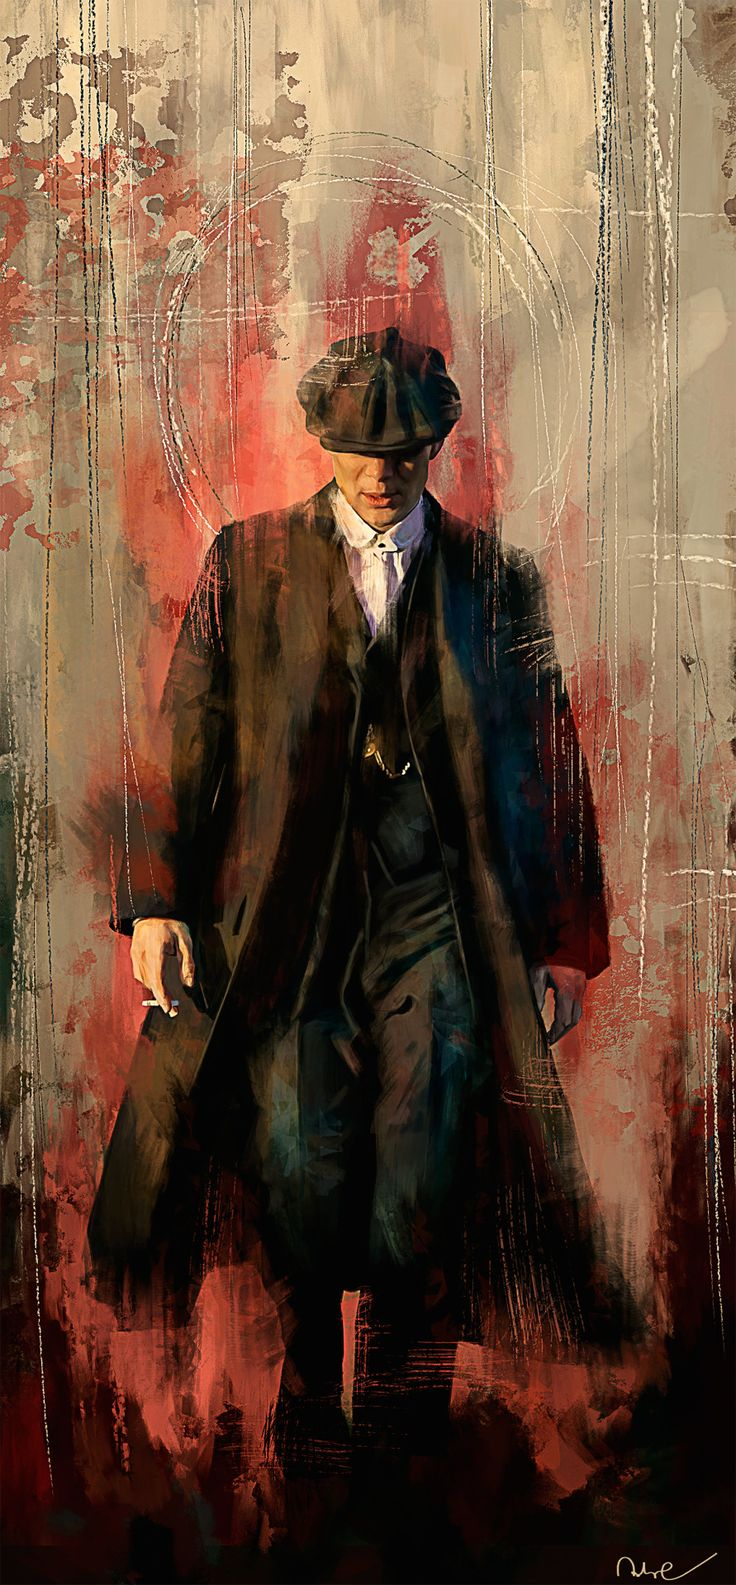 'On a gathering storm comes a tall handsome man in a dusty black coat with a red right hand'